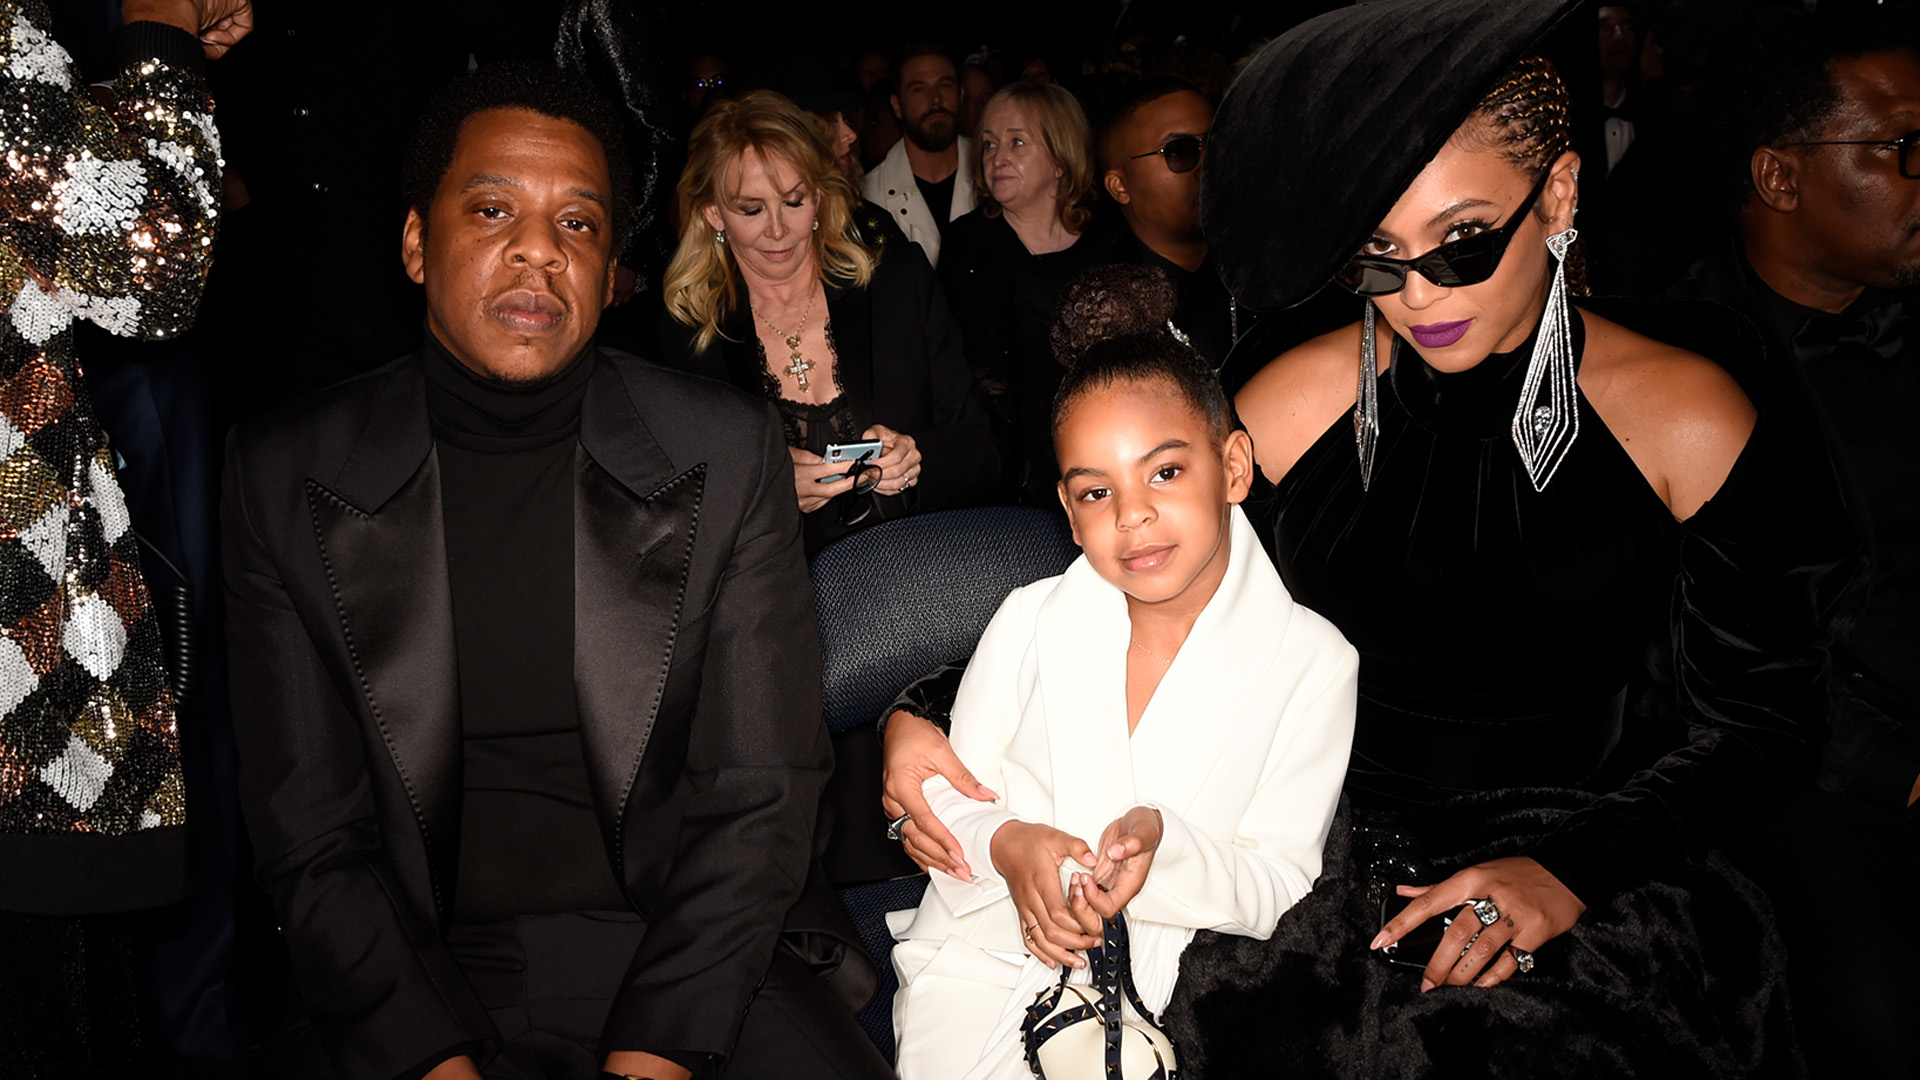 Beyoncé, 60th GRAMMY Awards nominee JAY-Z, and their daughter Blue Ivy nonchalantly give the camera some love.